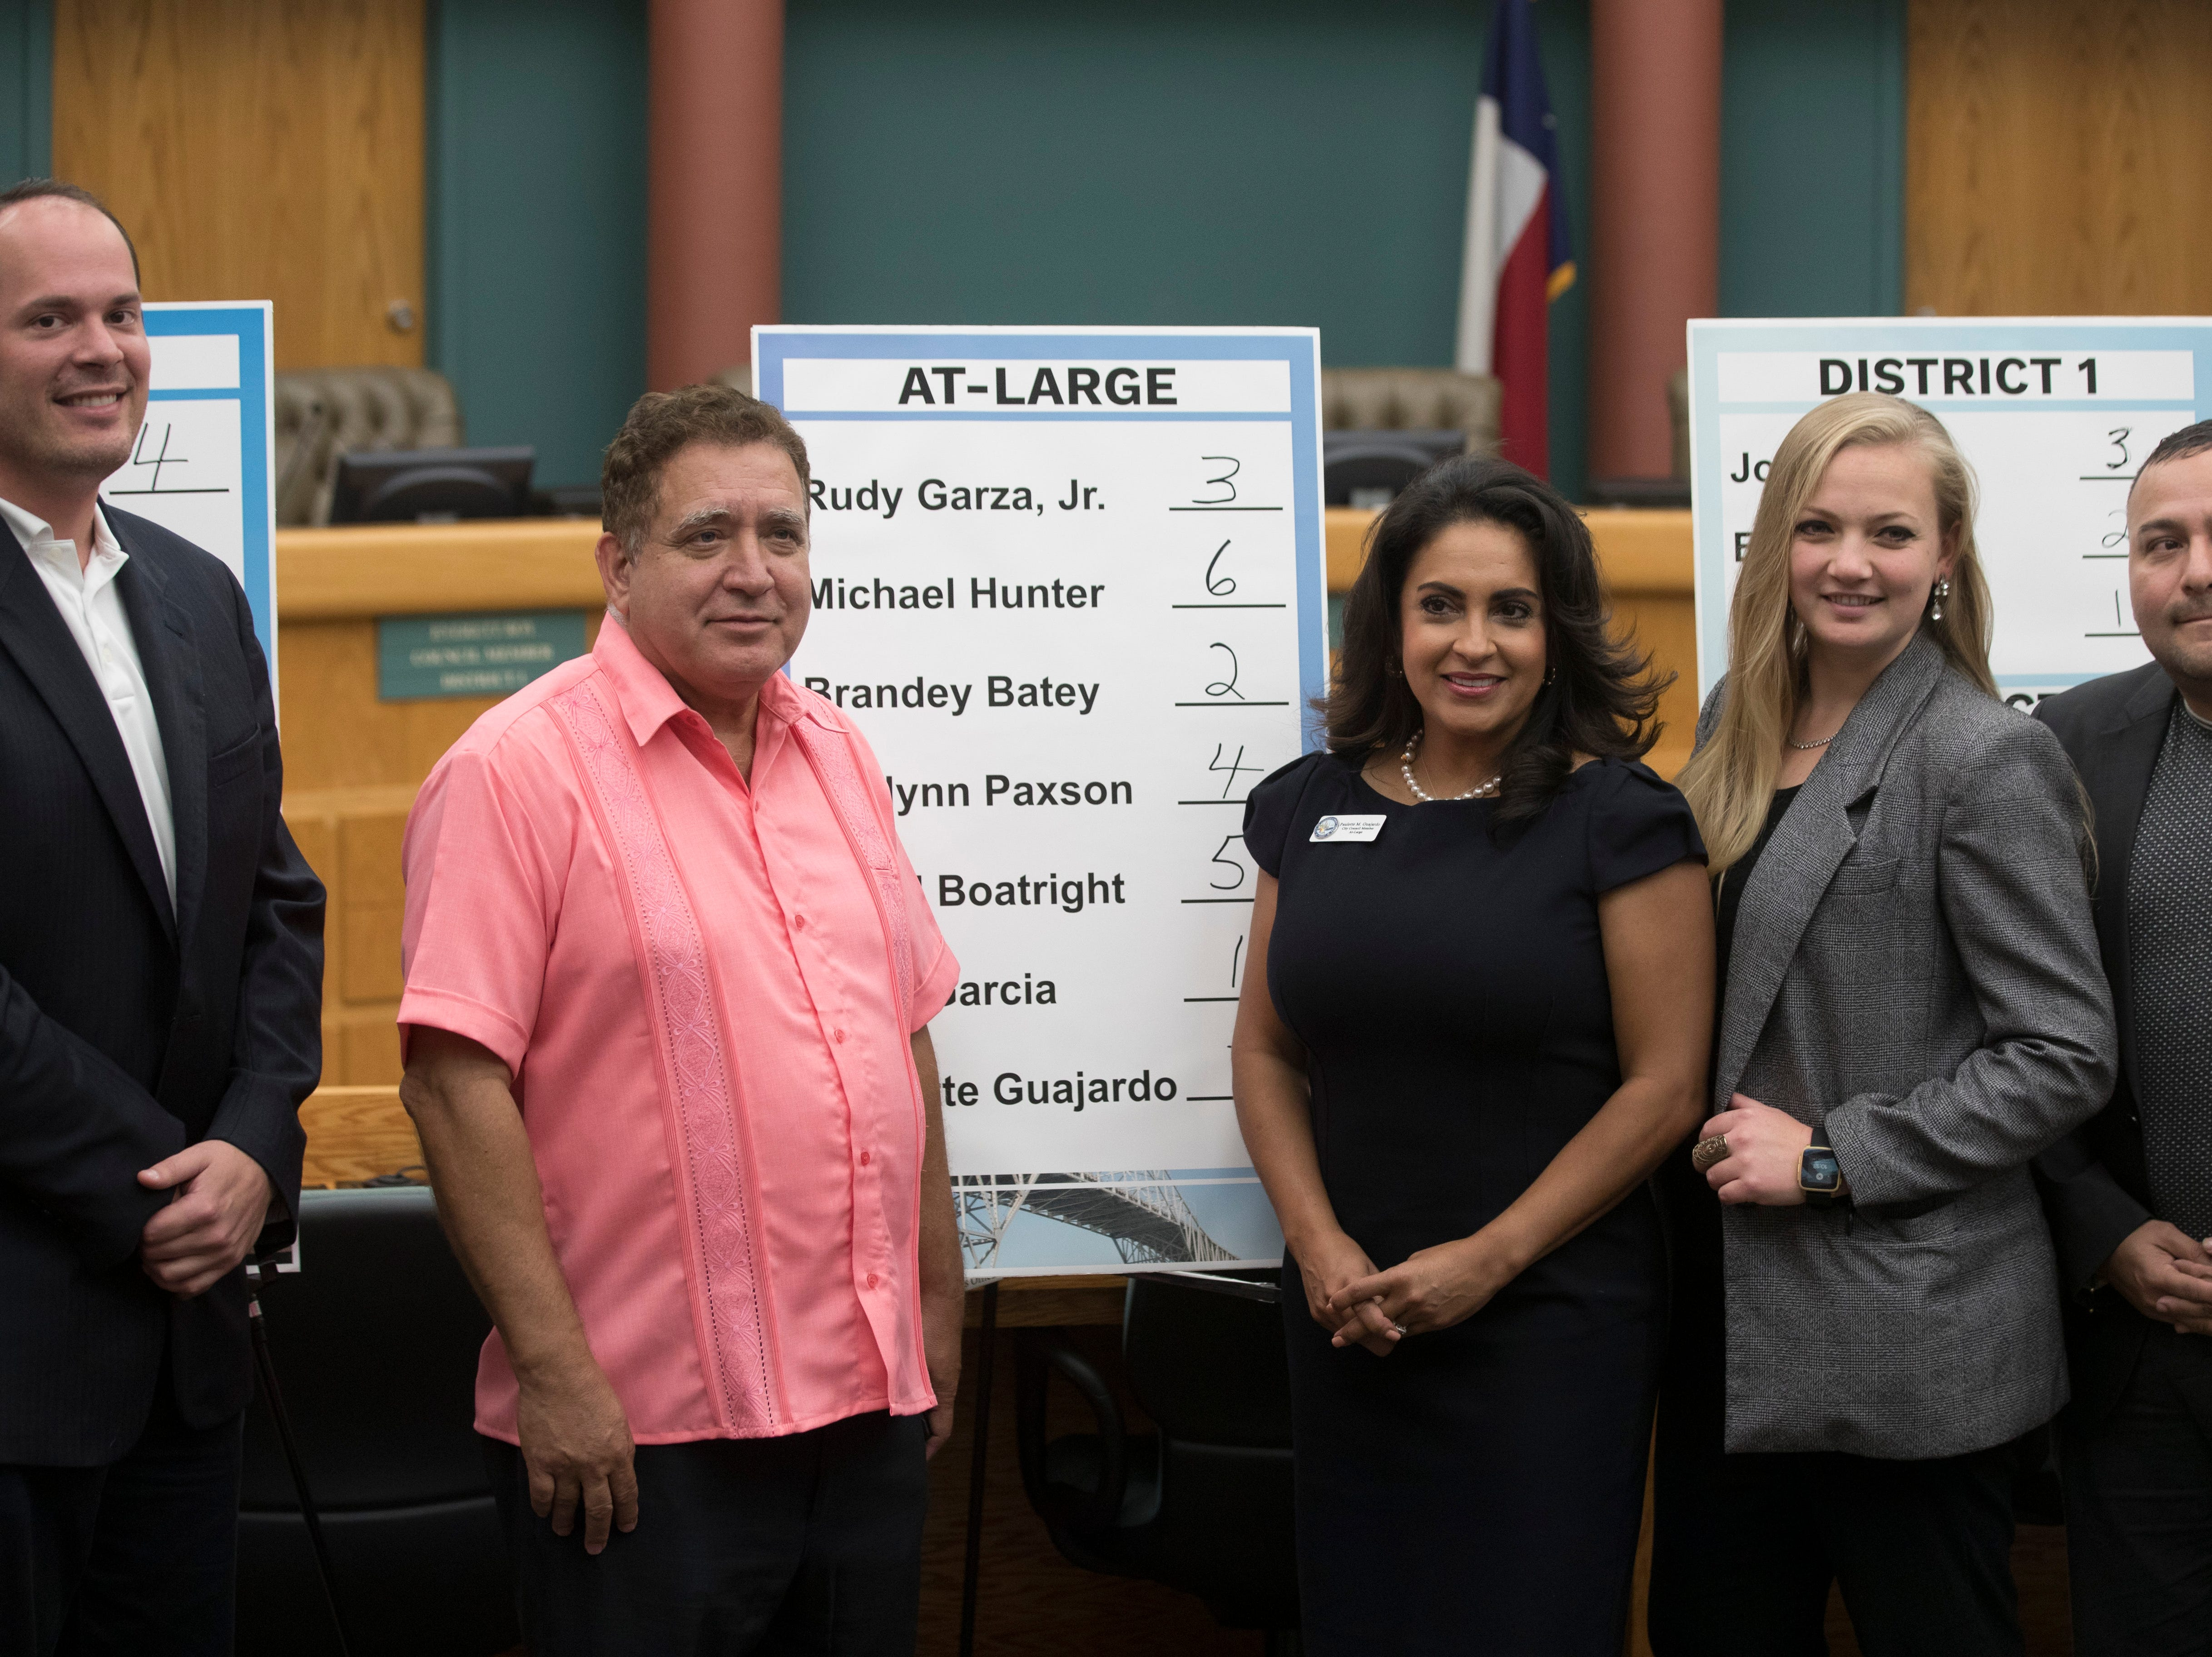 City Council at-large candidates Michael Hunter, Rudy Garza Jr., Paulette Guajardo , Kaylynn Paxson, and John Garcia pose for a photo after drawing for their ballot order on Thursday, August 23, 2018 at City Hall.